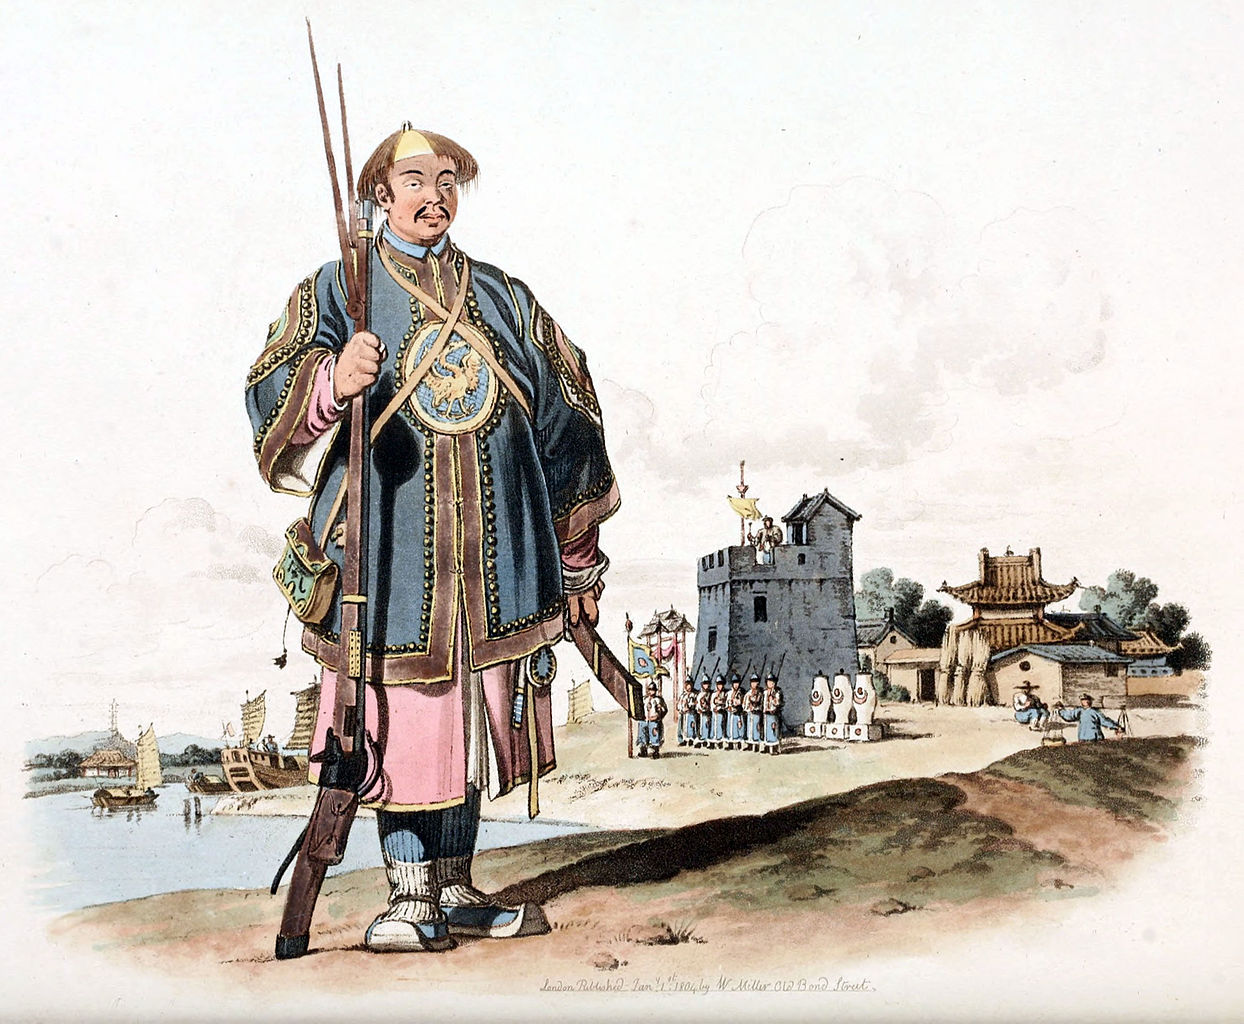 FileA SOLDIER OF CHUSAN Armed with a Matchlock Gunjpg